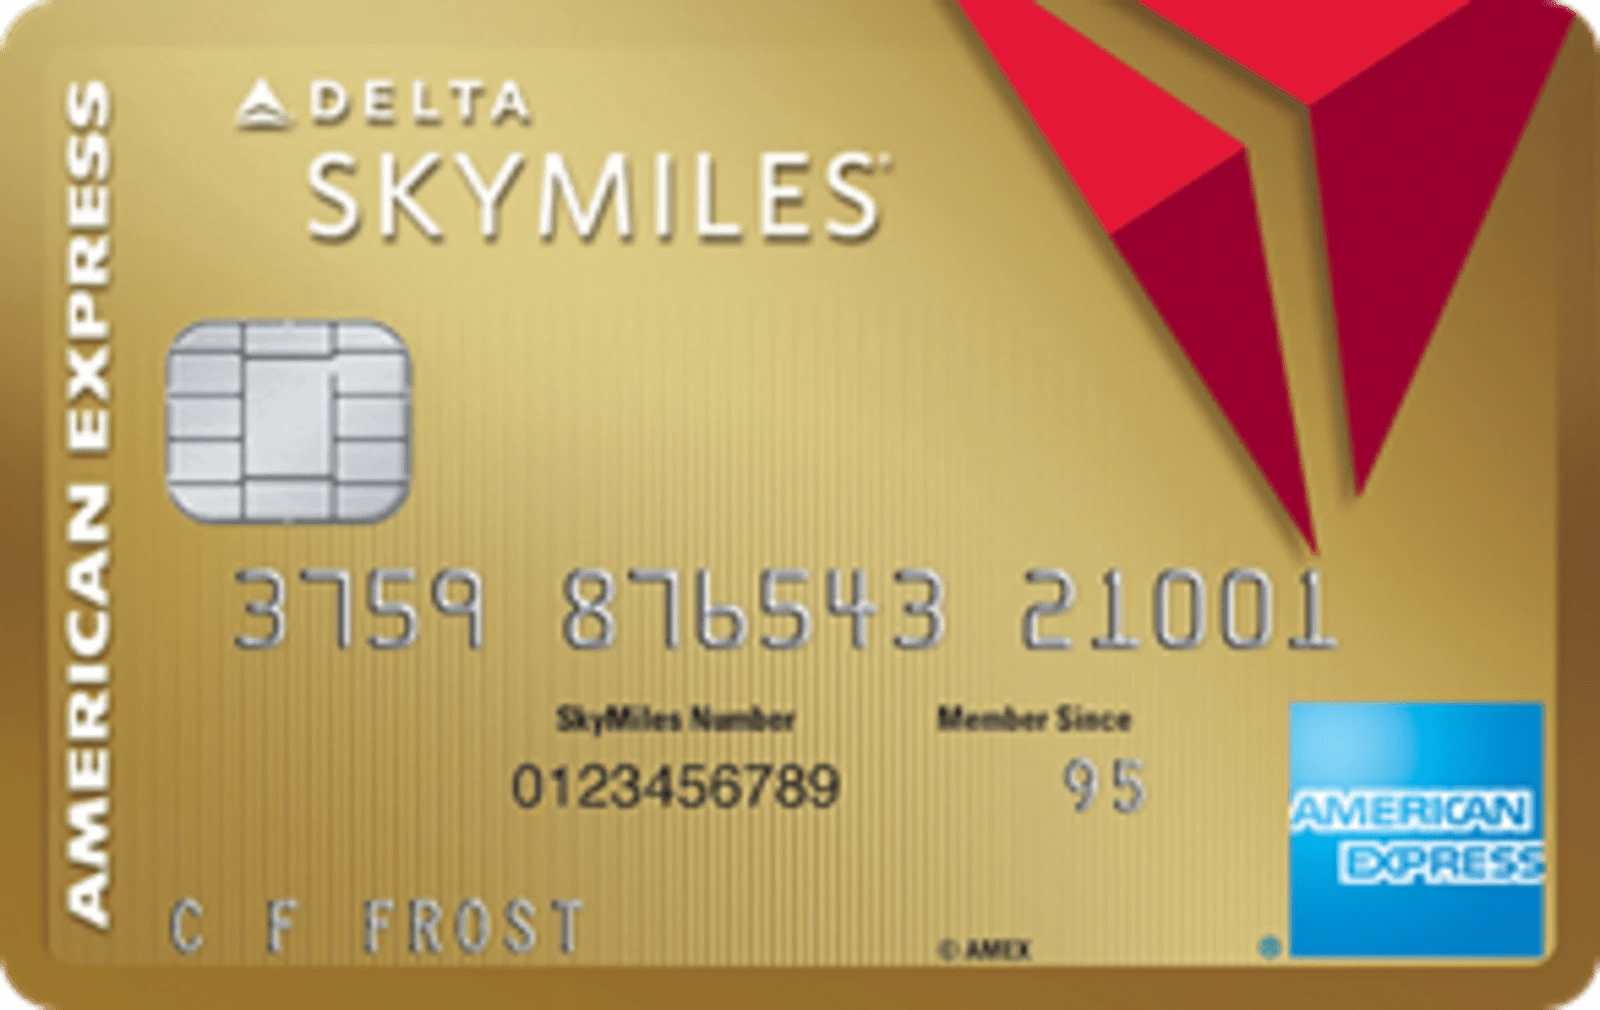 Miles And More Iberia Best Credit Cards For Airline Miles 2019 Picks Valuepenguin